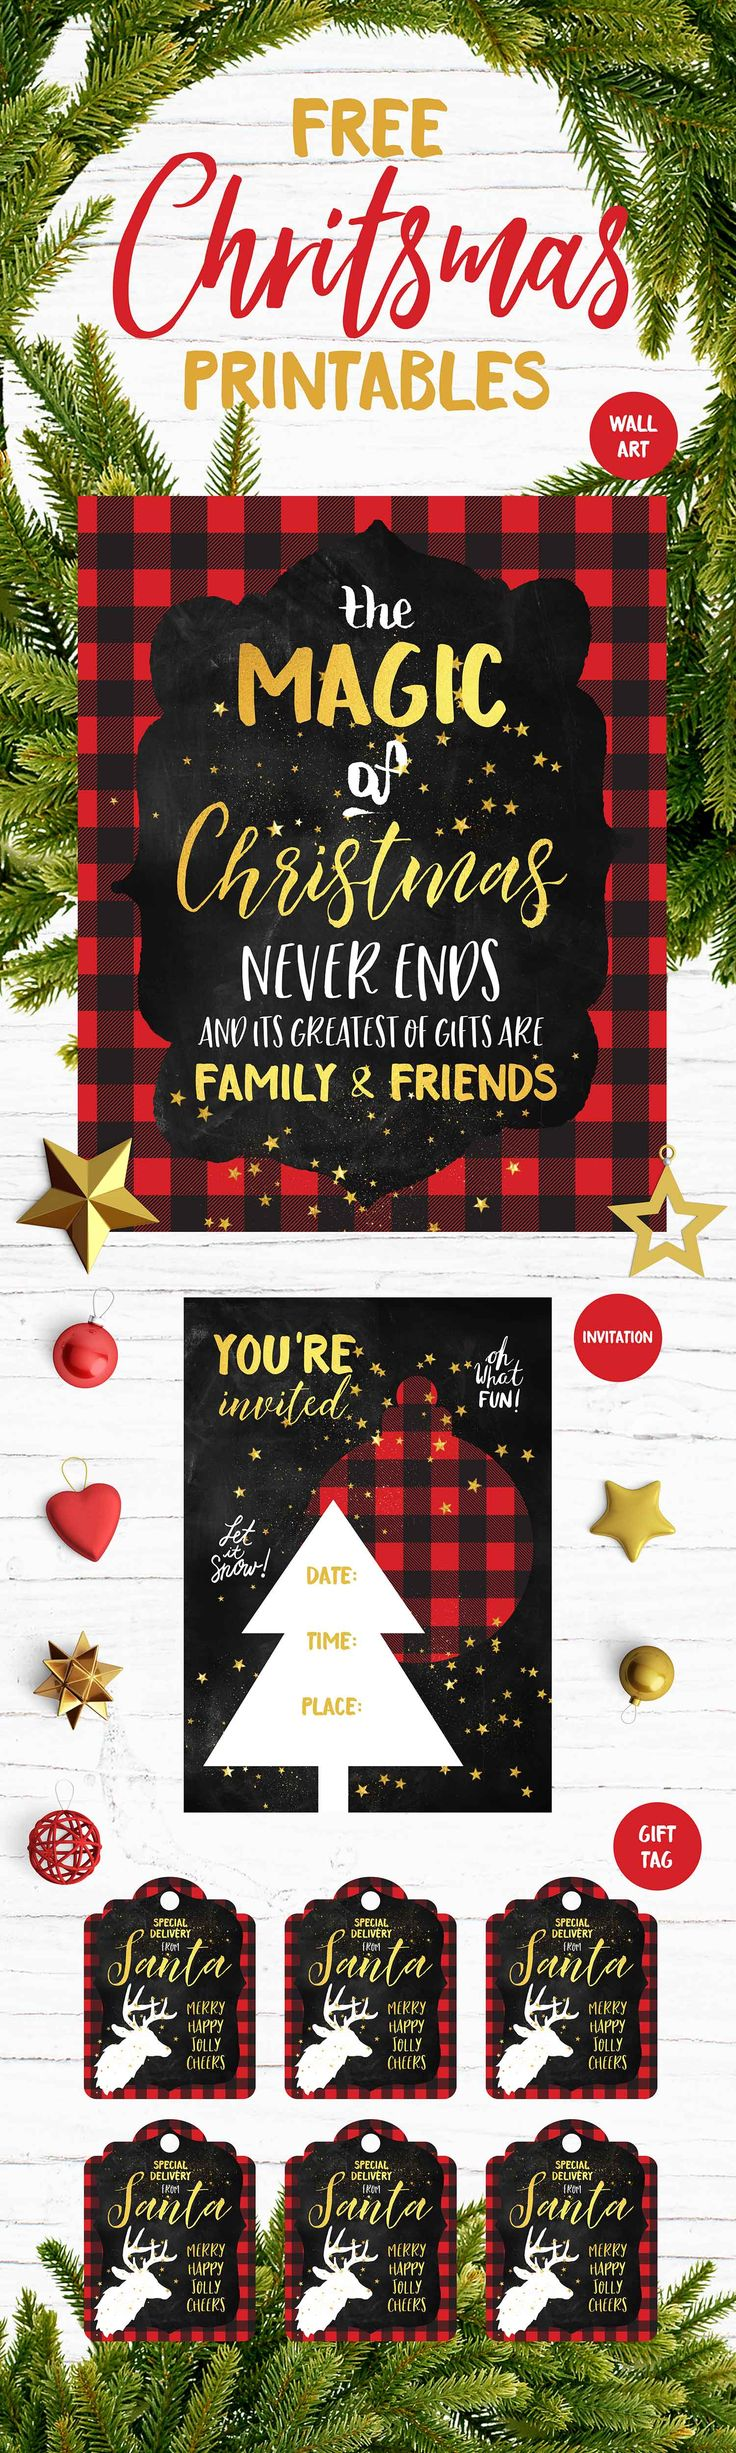 FREE Christmas Wall Art, Invitations and Gift Tags